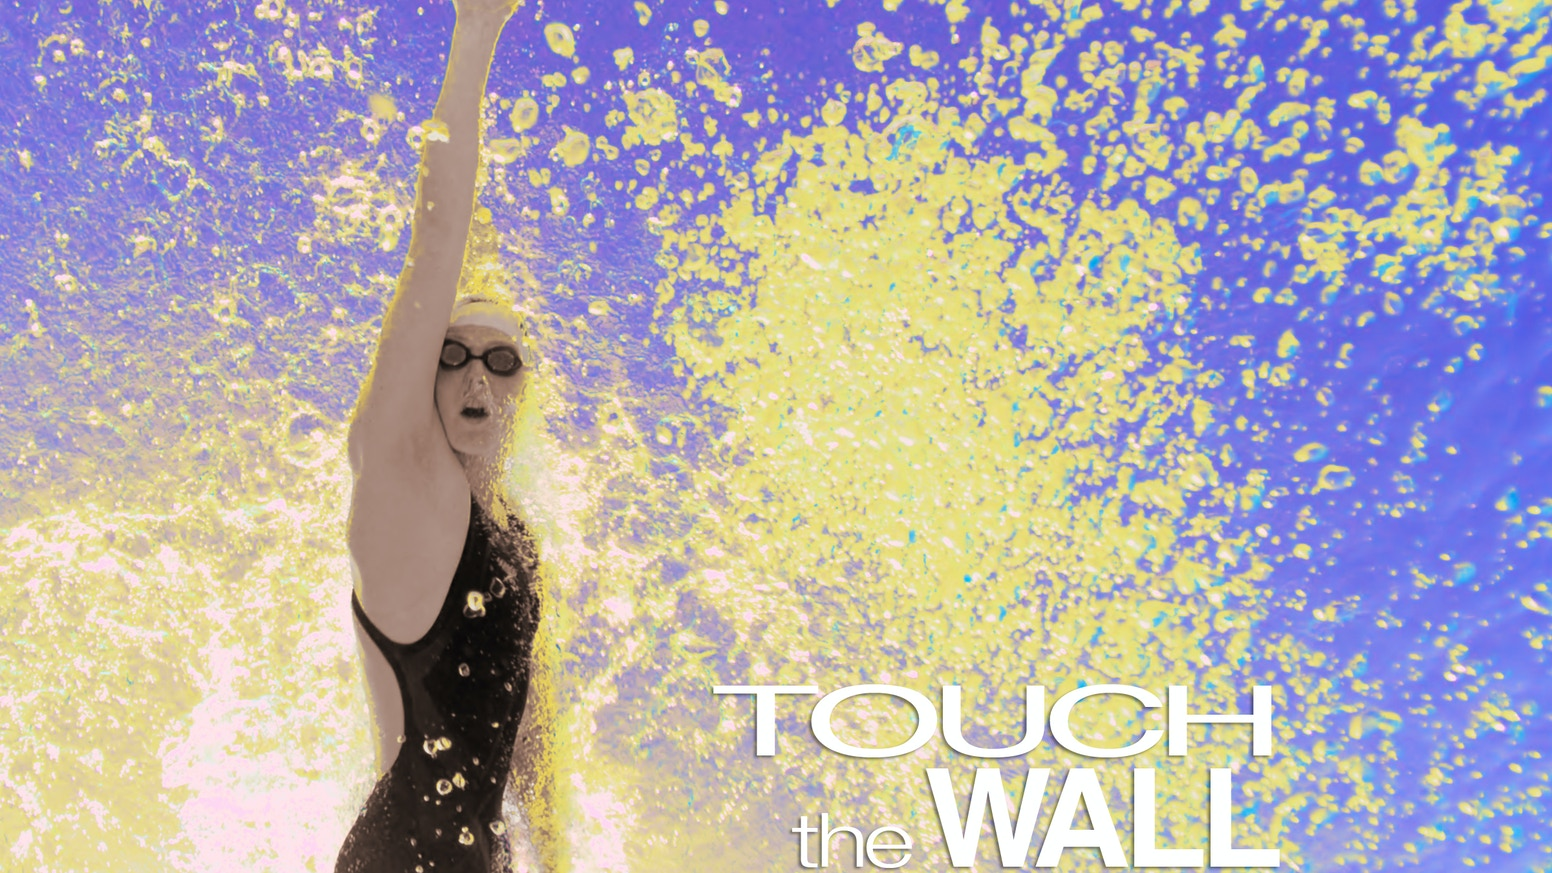 A feature documentary that follows swimming phenom Missy Franklin and teammate Kara Lynn Joyce as they prepare for the London Olympics.